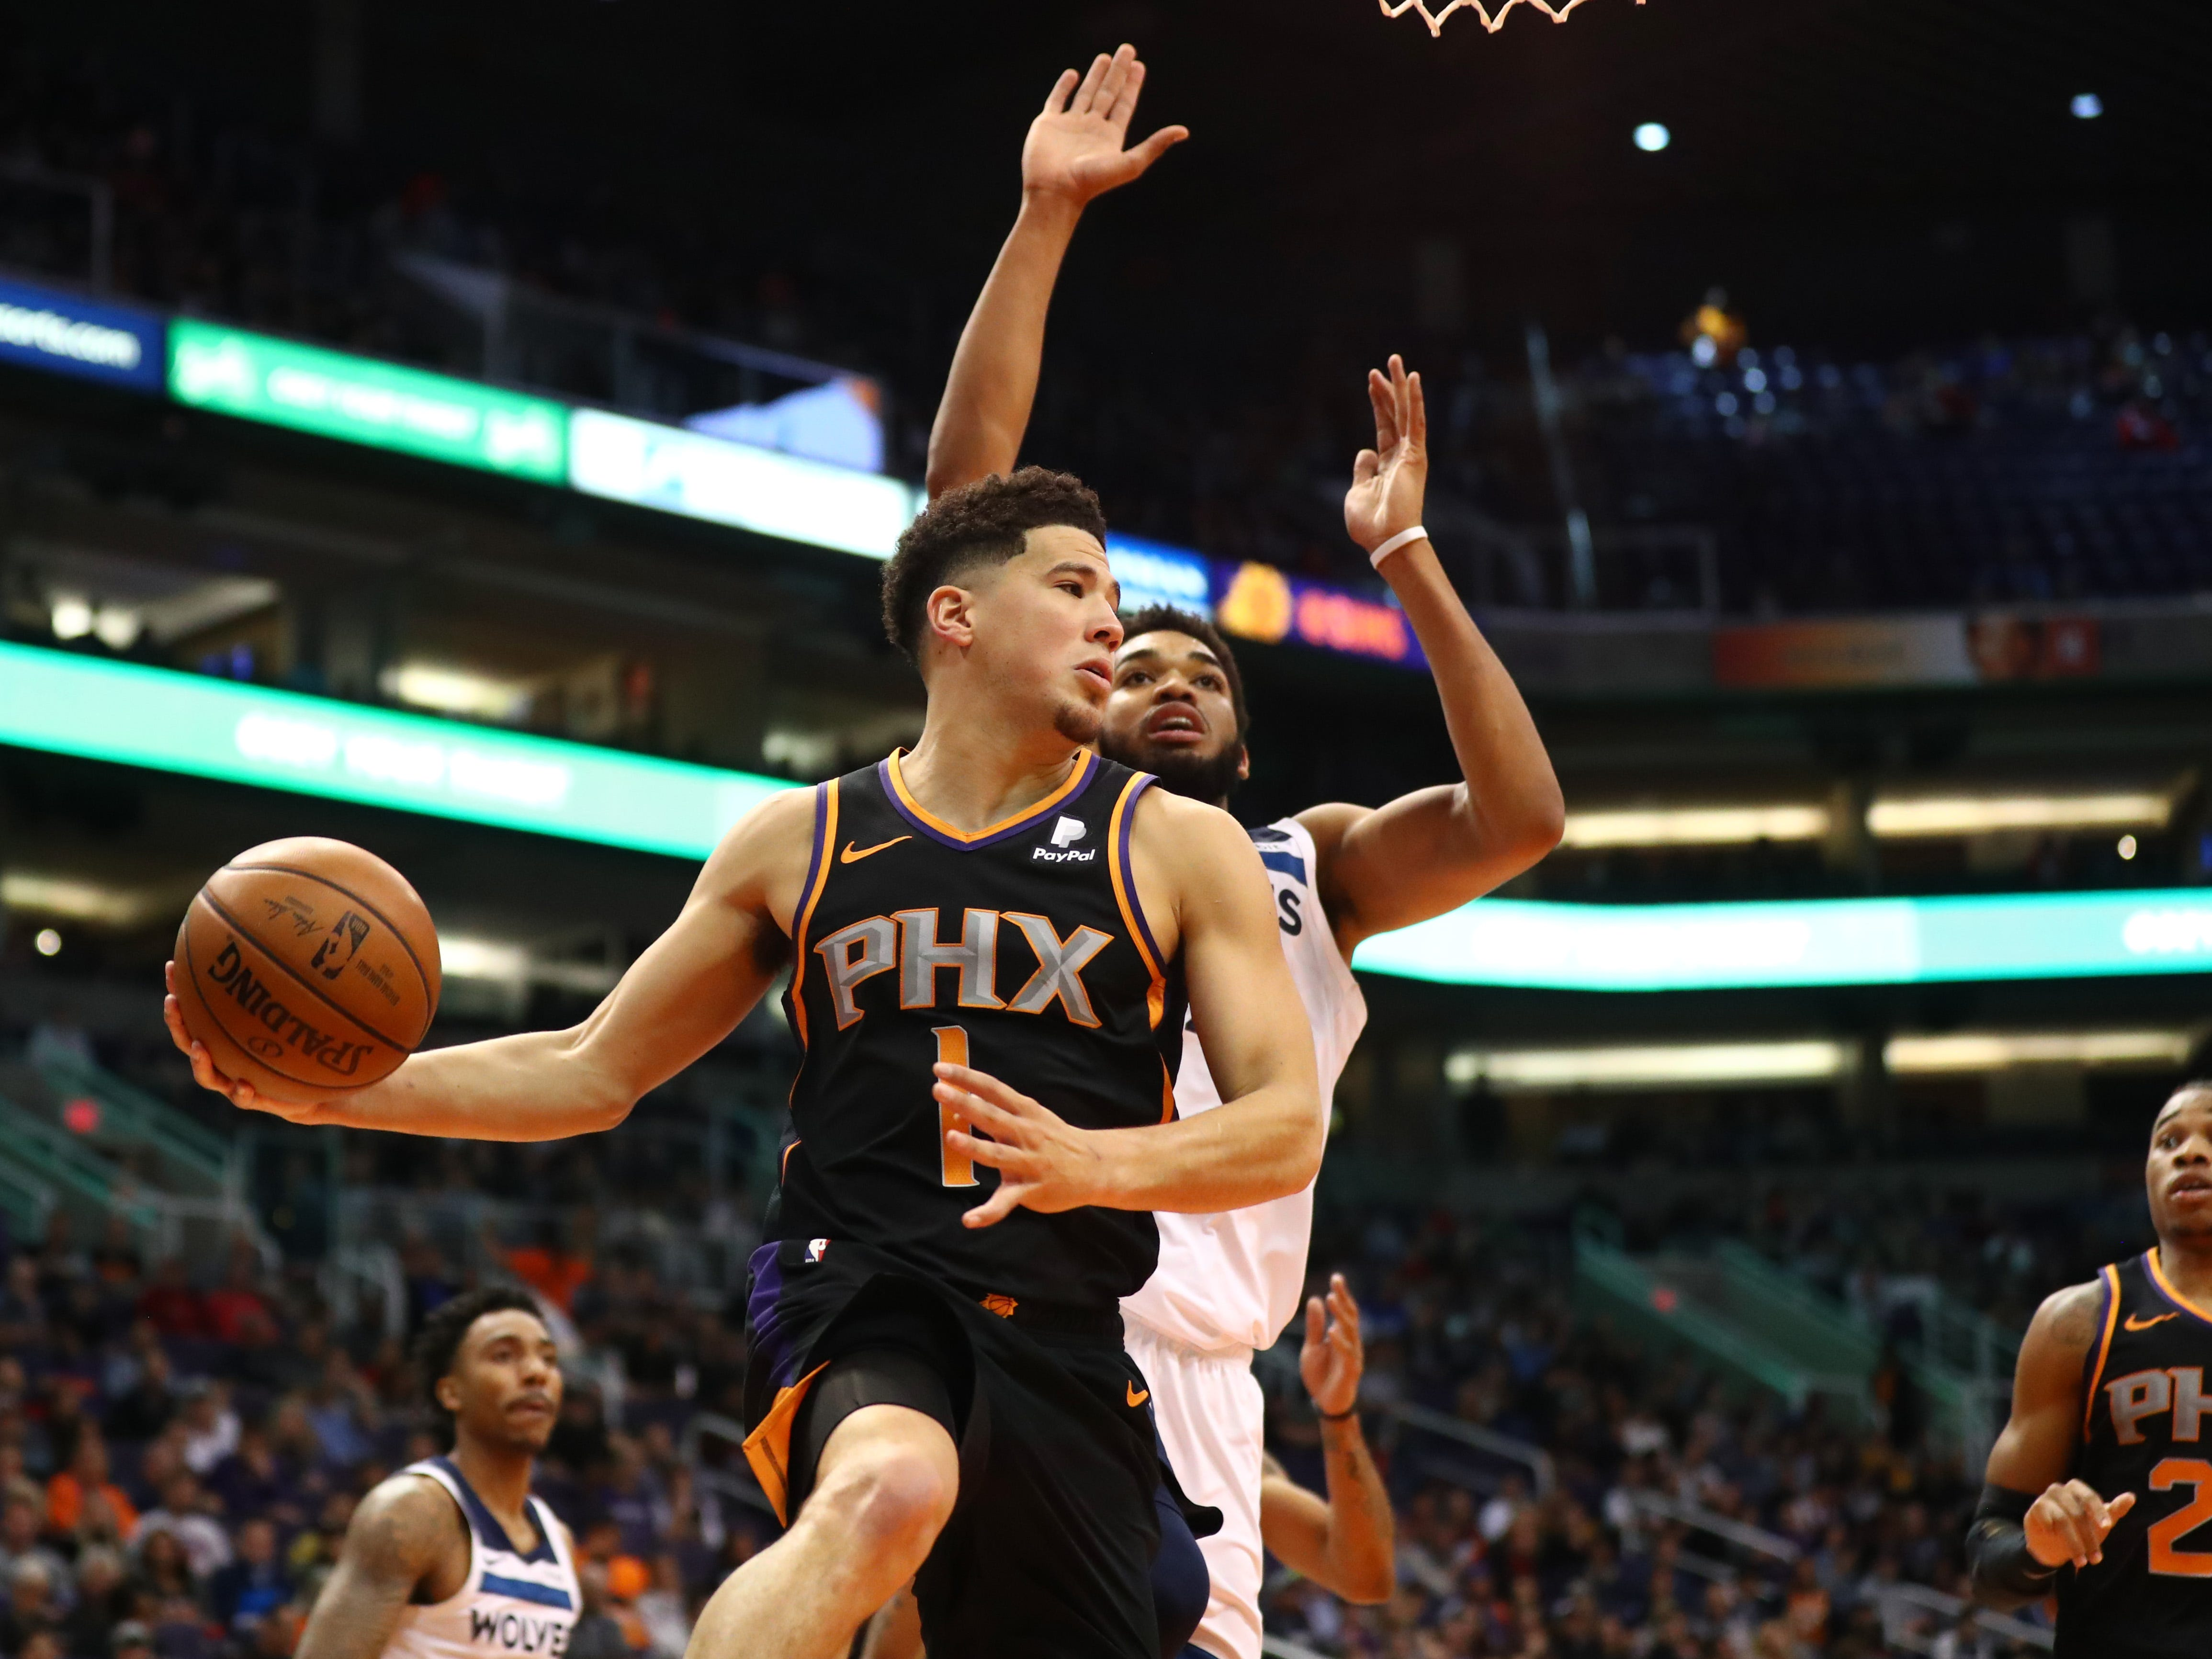 Dec 15, 2018; Phoenix, AZ, USA; Phoenix Suns guard Devin Booker passes the ball in the first half against the Minnesota Timberwolves at Talking Stick Resort Arena. Mandatory Credit: Mark J. Rebilas-USA TODAY Sports